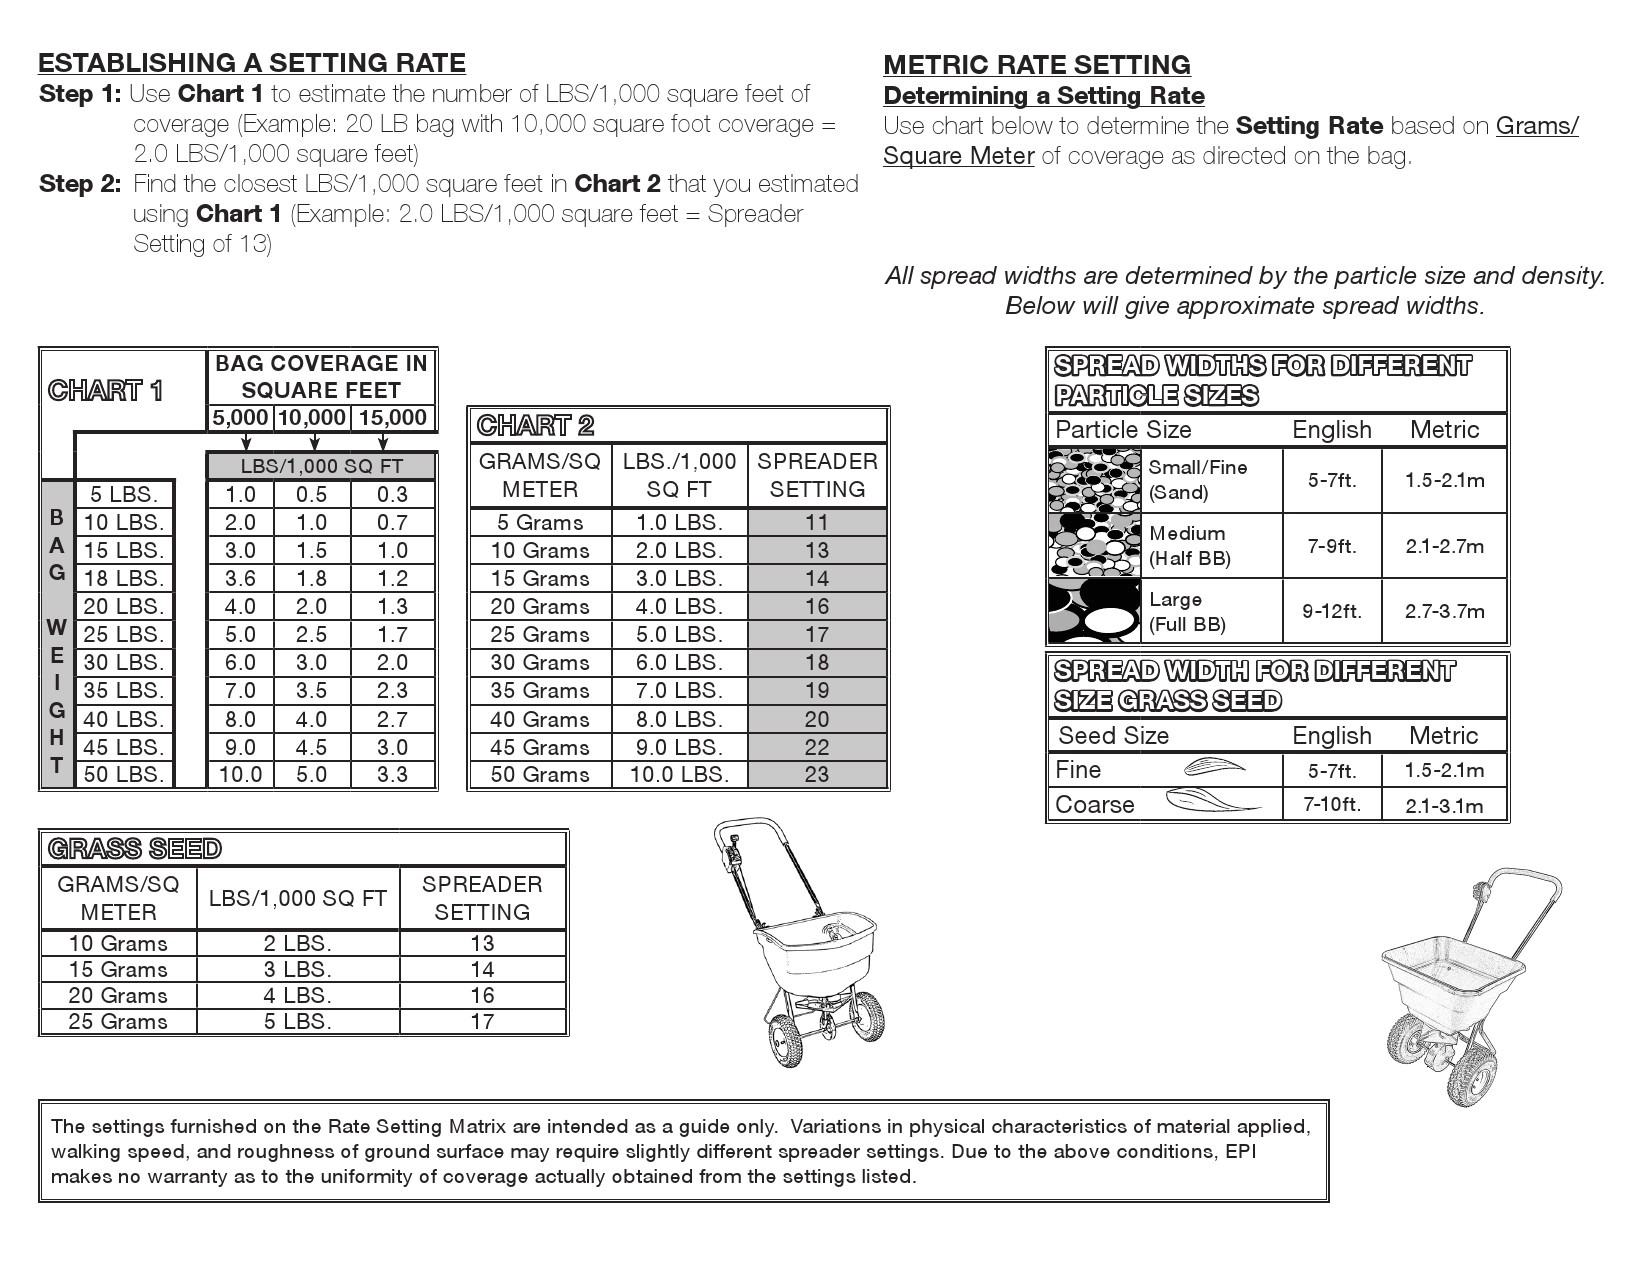 Scotts Spreader Settings Comparison Chart Do You Know How Many People Show Up at Scotts Broadcast